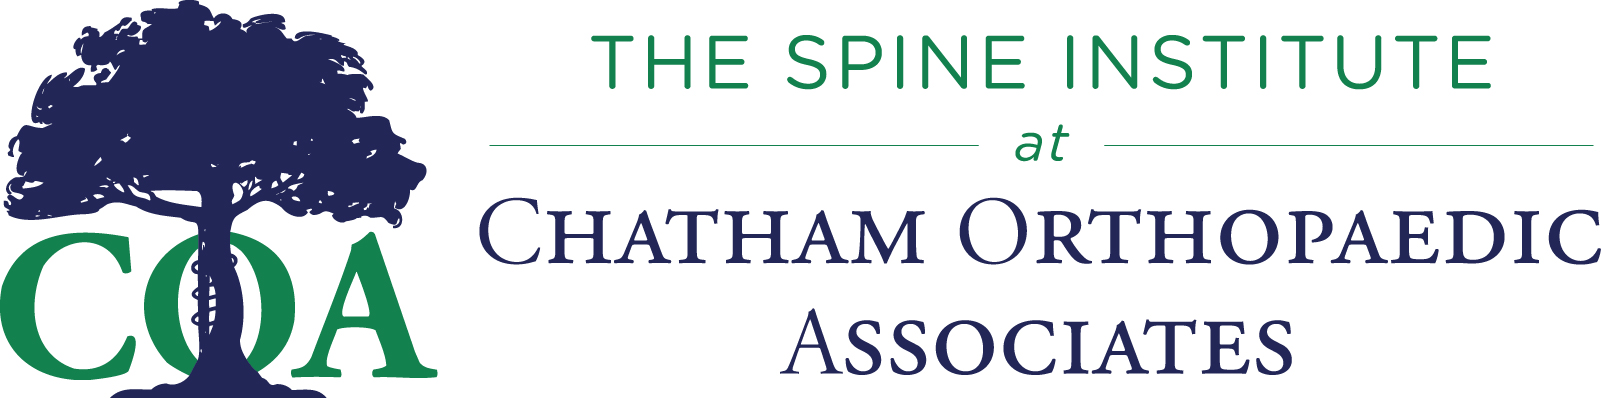 The Spine Institute at Chatham Orthopaedics Urgent Care Savannah